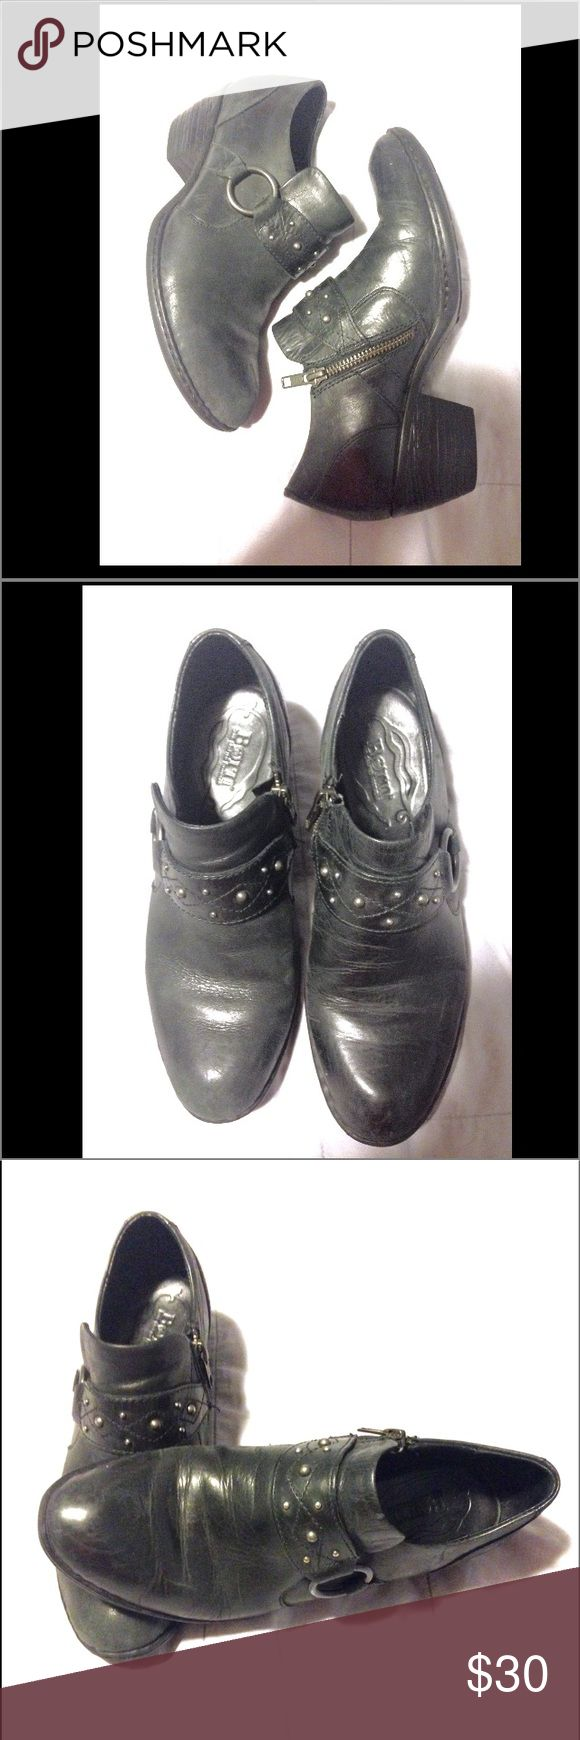 B.O.C. Born Black Zip Up Booties Size 7 B.O.C. BORN Women's Black Zip Up Booties, Size (7), Excellent Used Condition! If polished, they would be good as NEW! Thanks! Born Shoes Ankle Boots & Booties